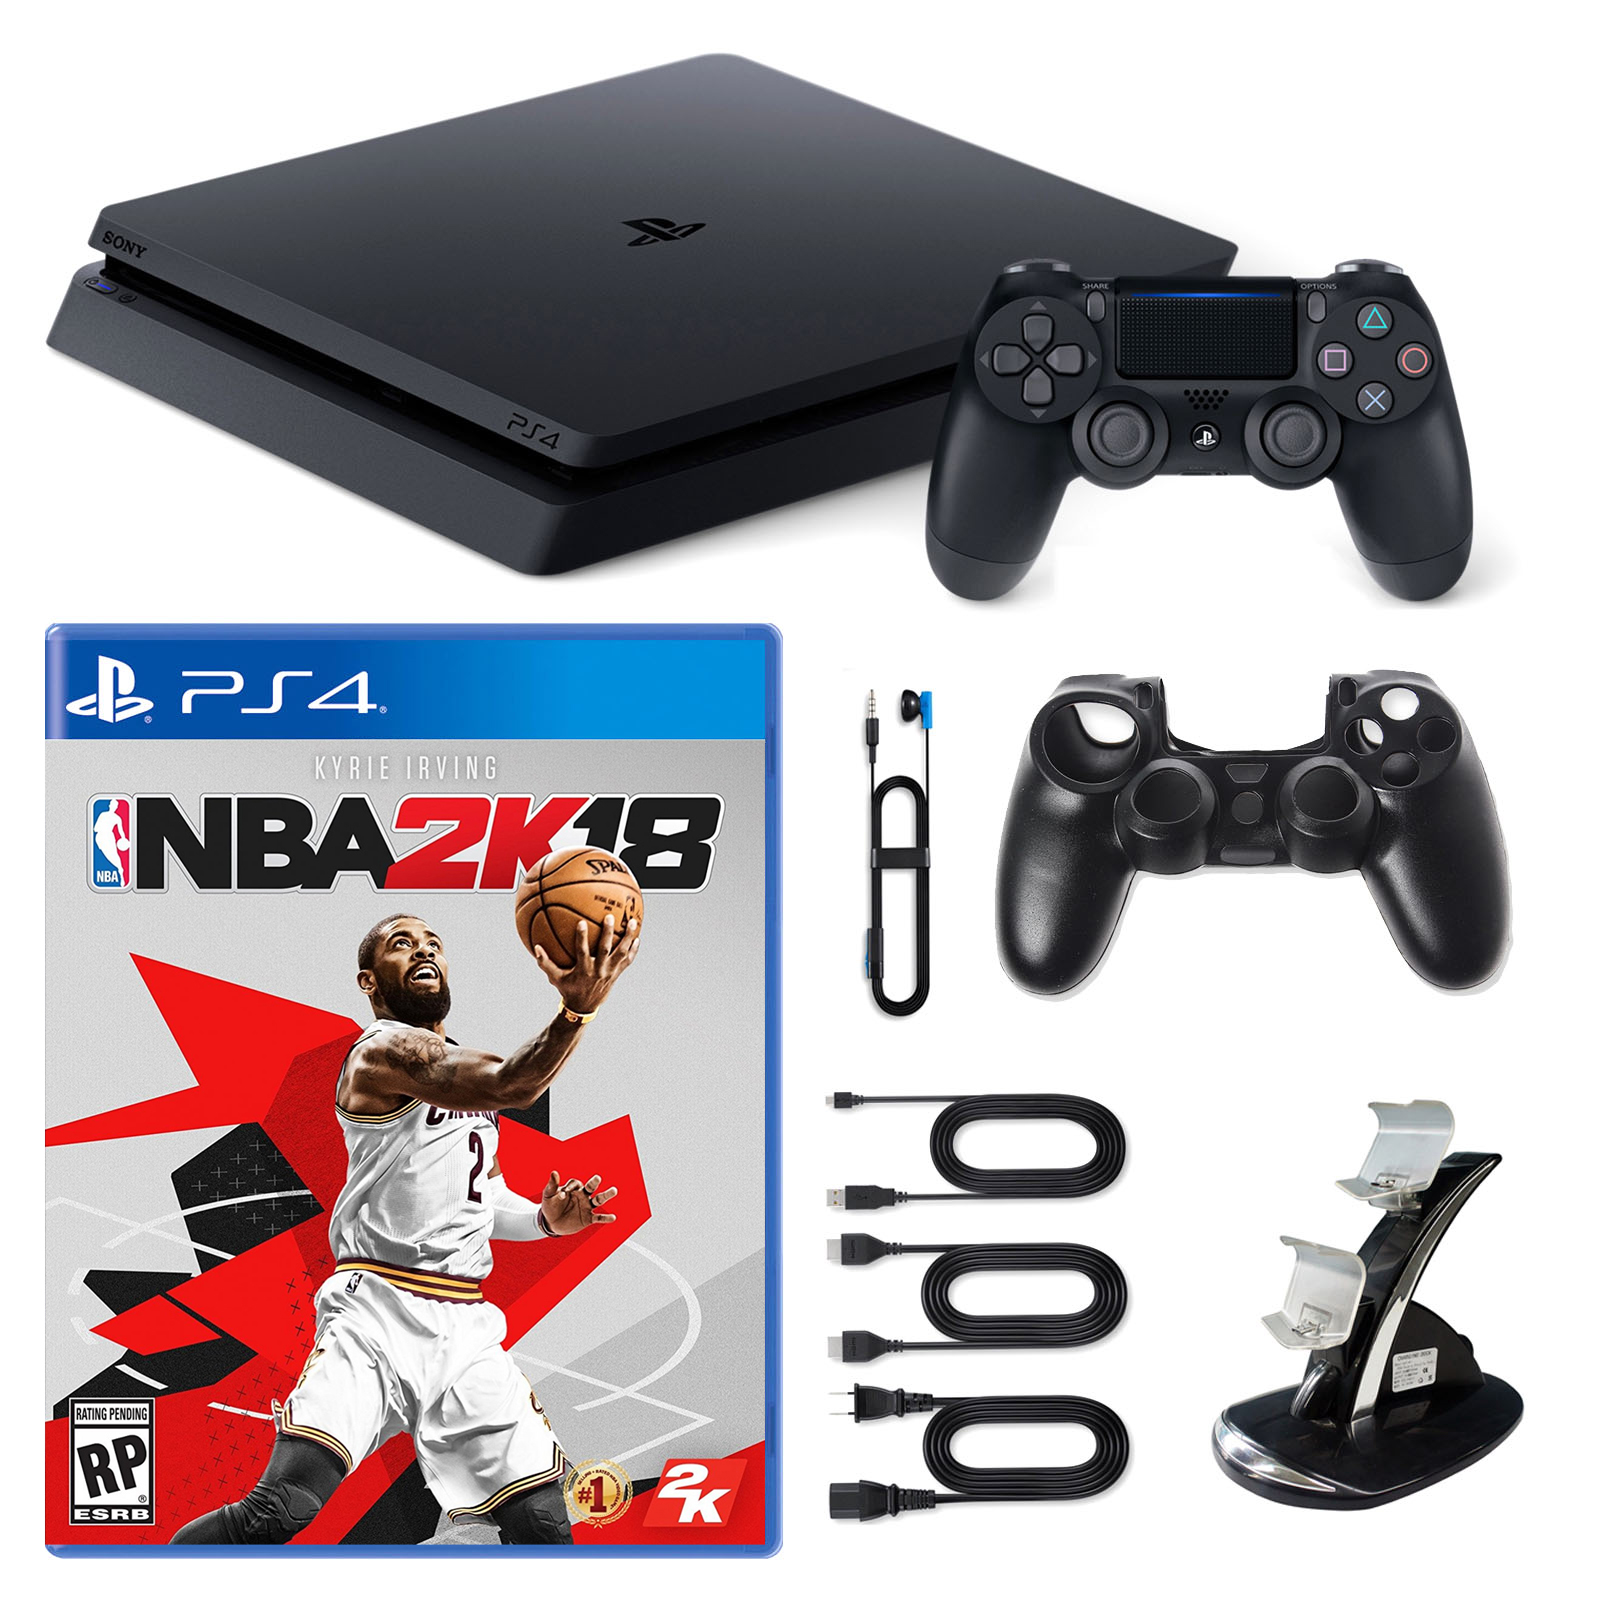 Playstation 4 1TB Core Console with NBA 2K18, Dual Cradle and Silicone Sleeve by PlayStation